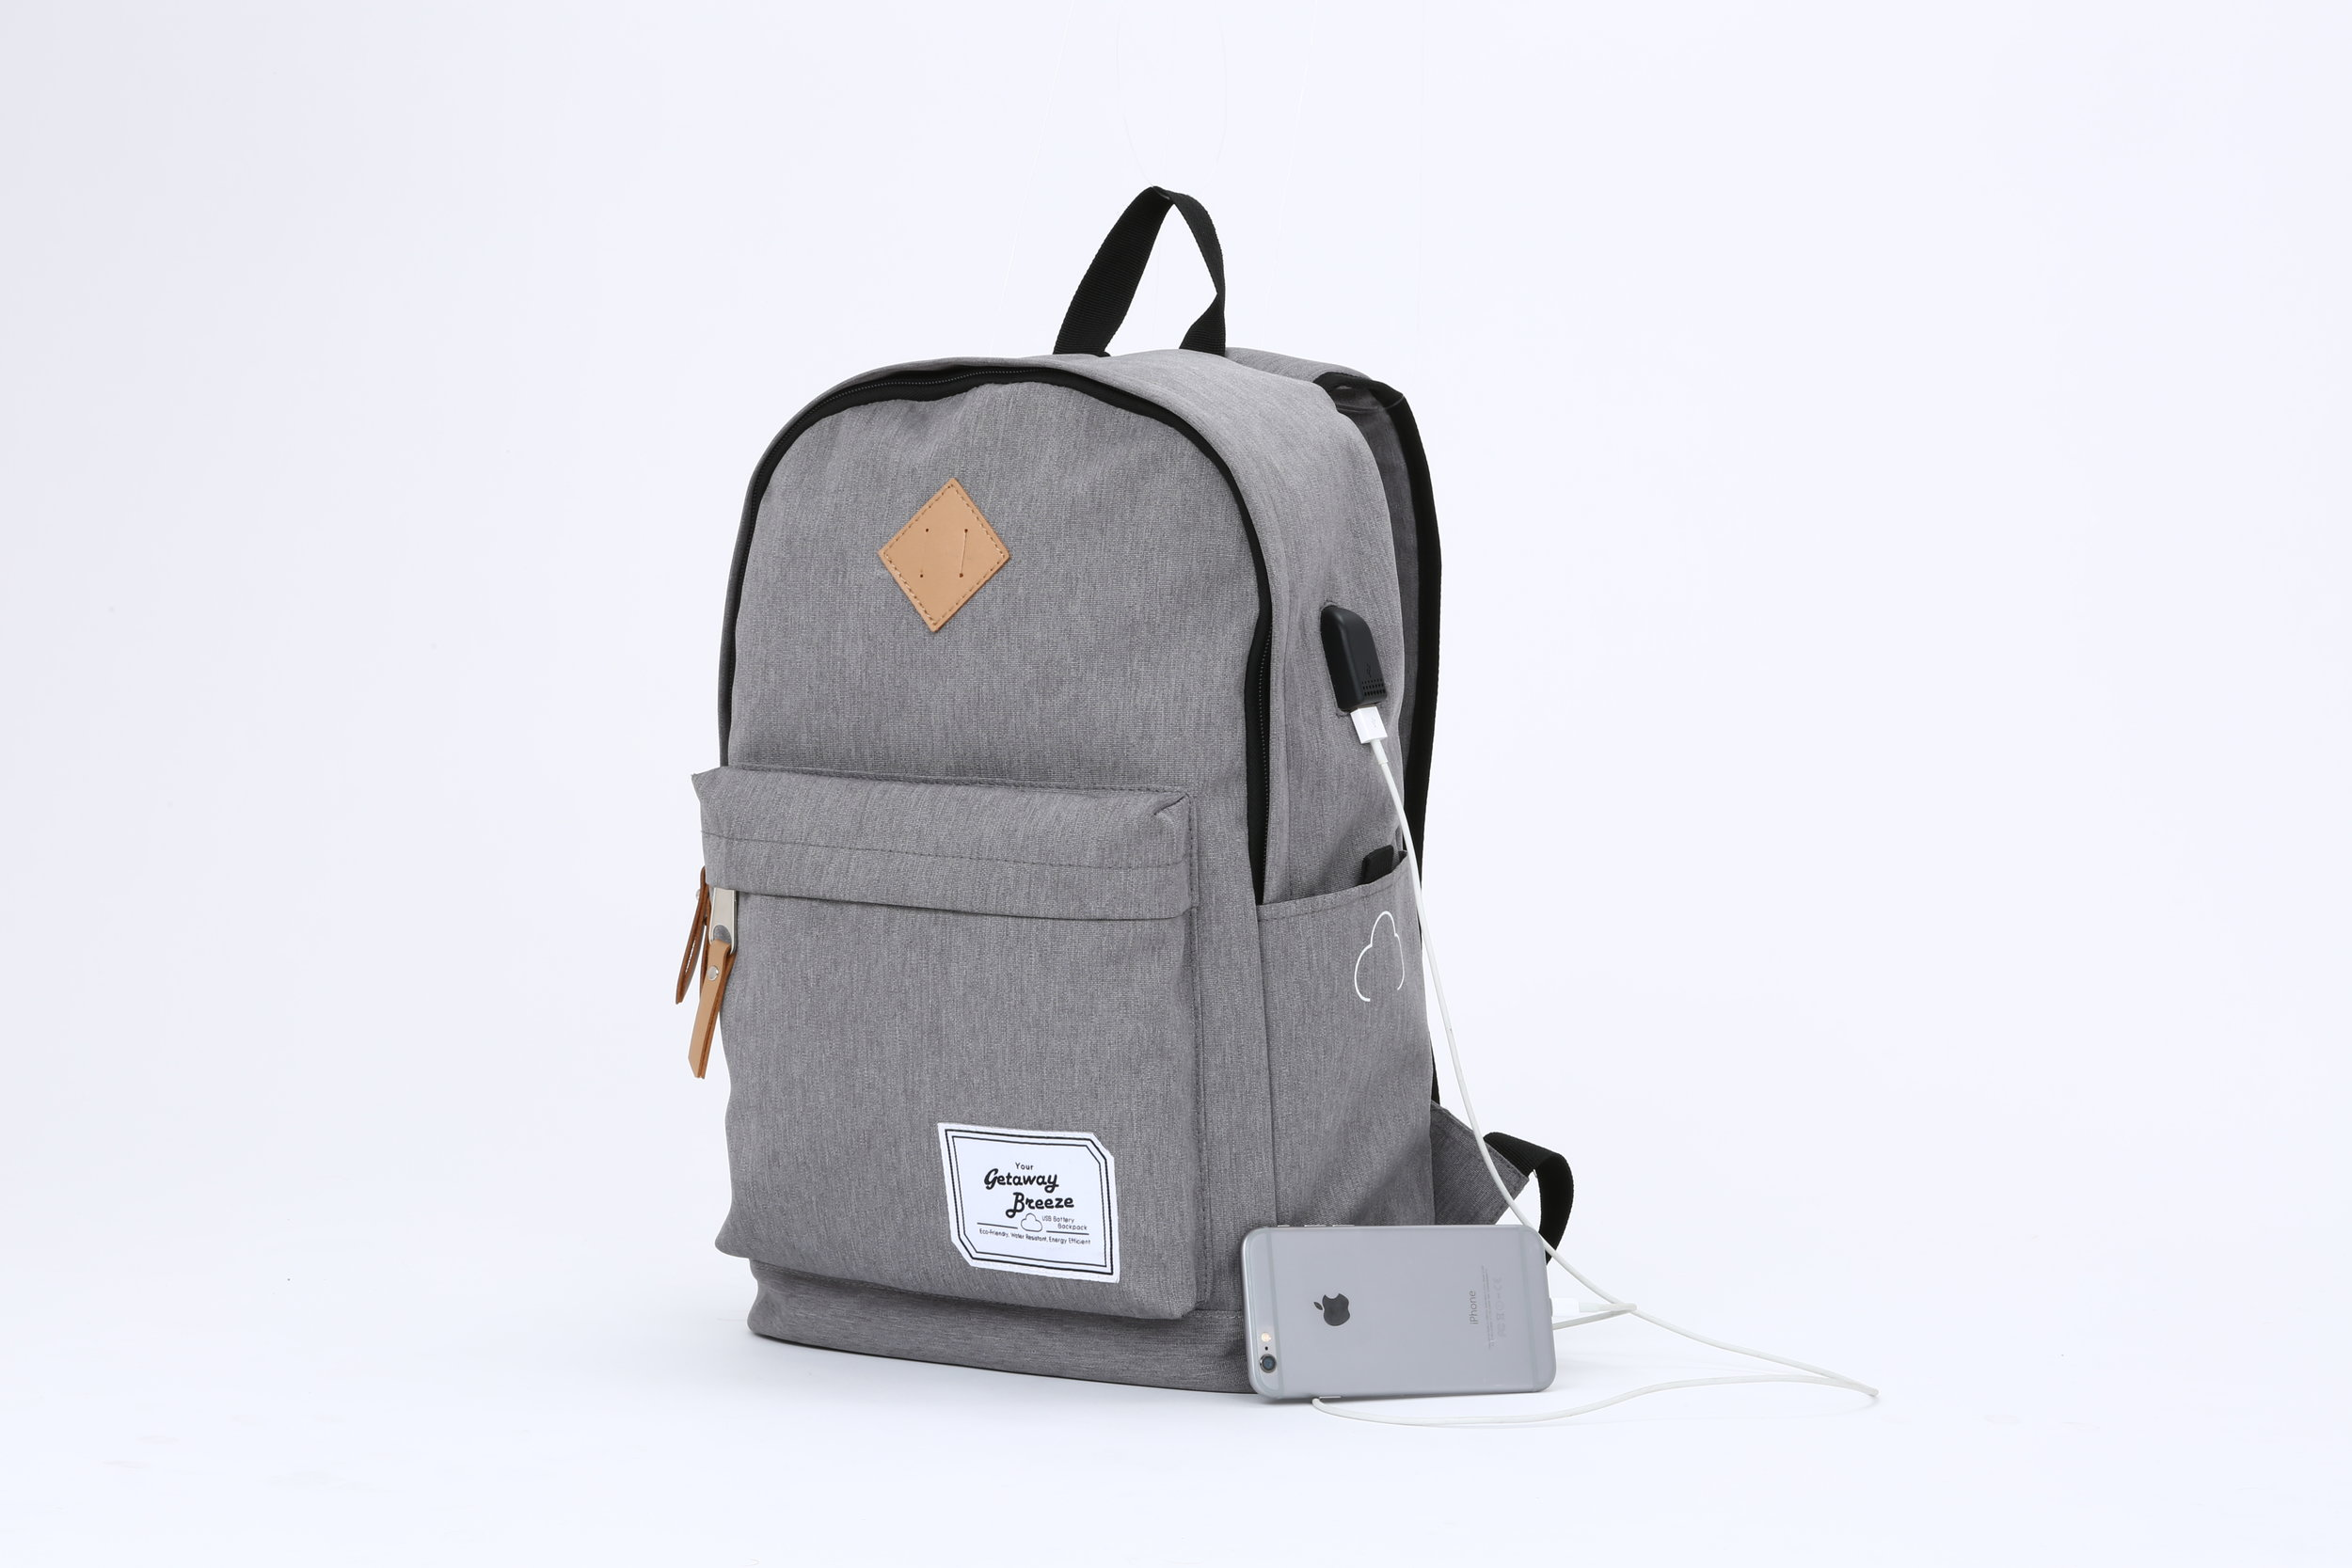 Charcoal Gray Breeze Battery Backpack (Battery Included) $39.95  Click Here